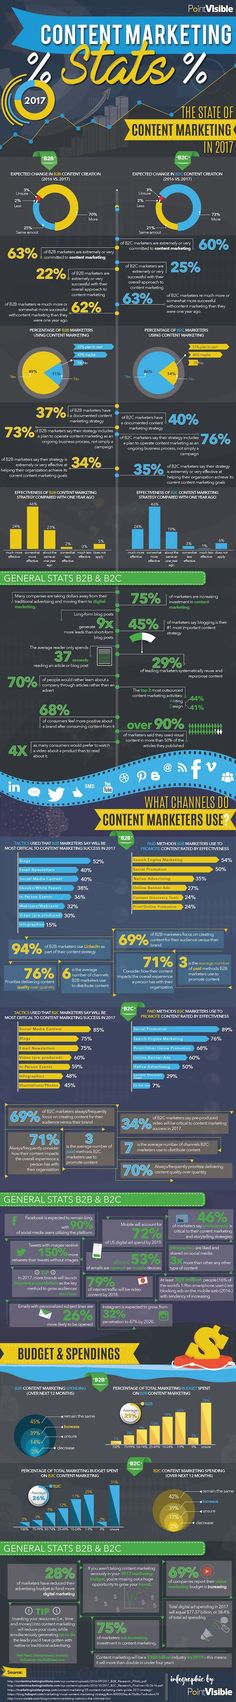 Content Marketing Statistics & Trends – 2017 Edition [infographic] | Social Media Today